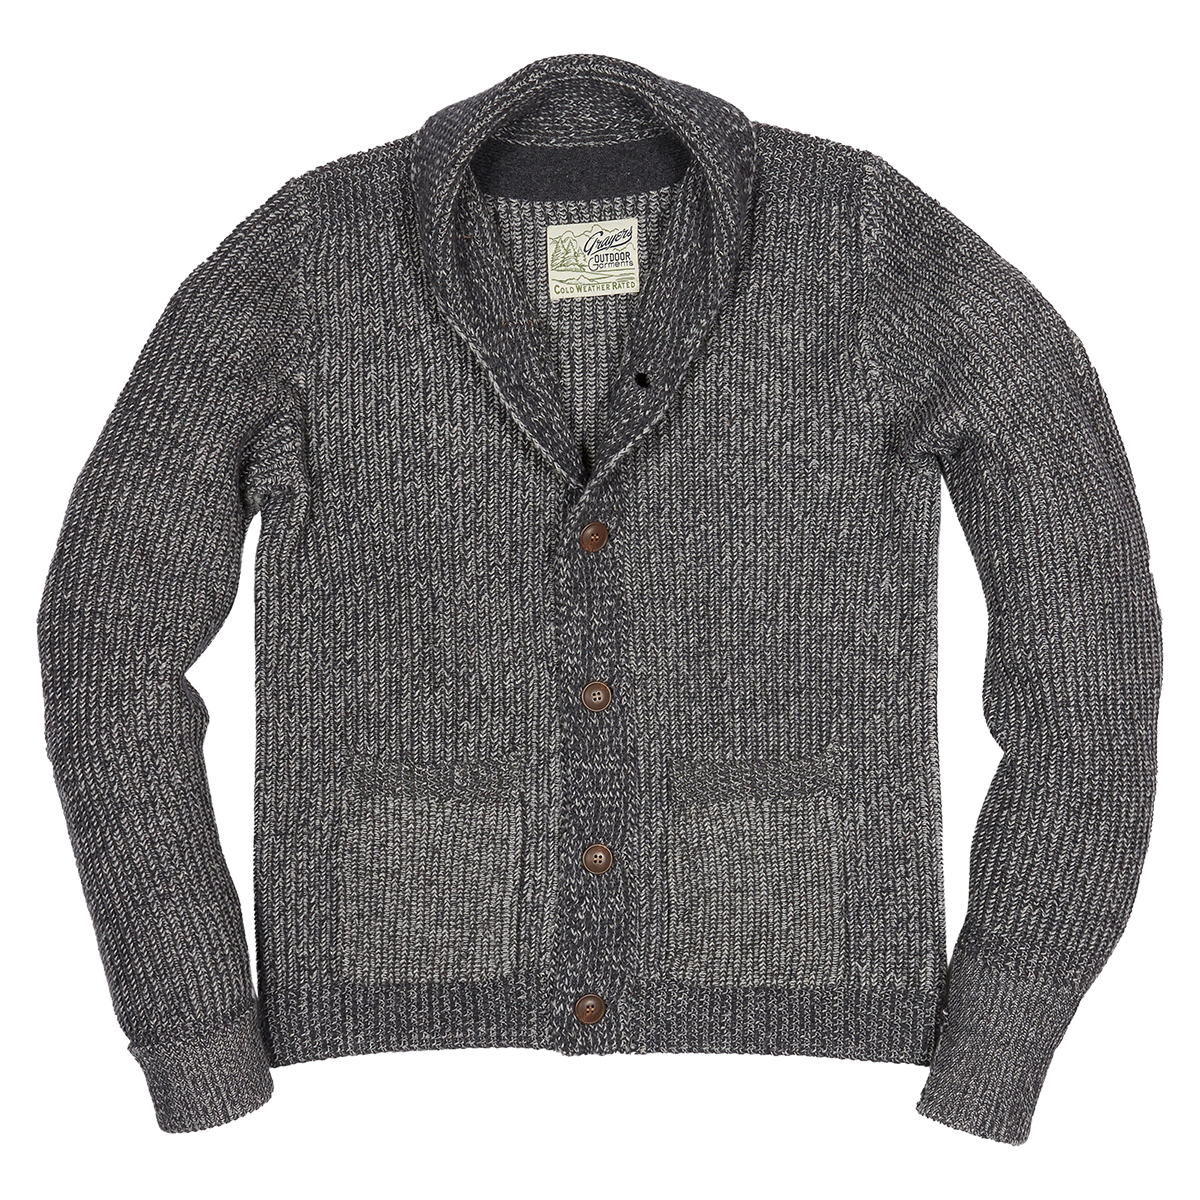 Belmont Plaited Cardigan Sweater - Charcoal